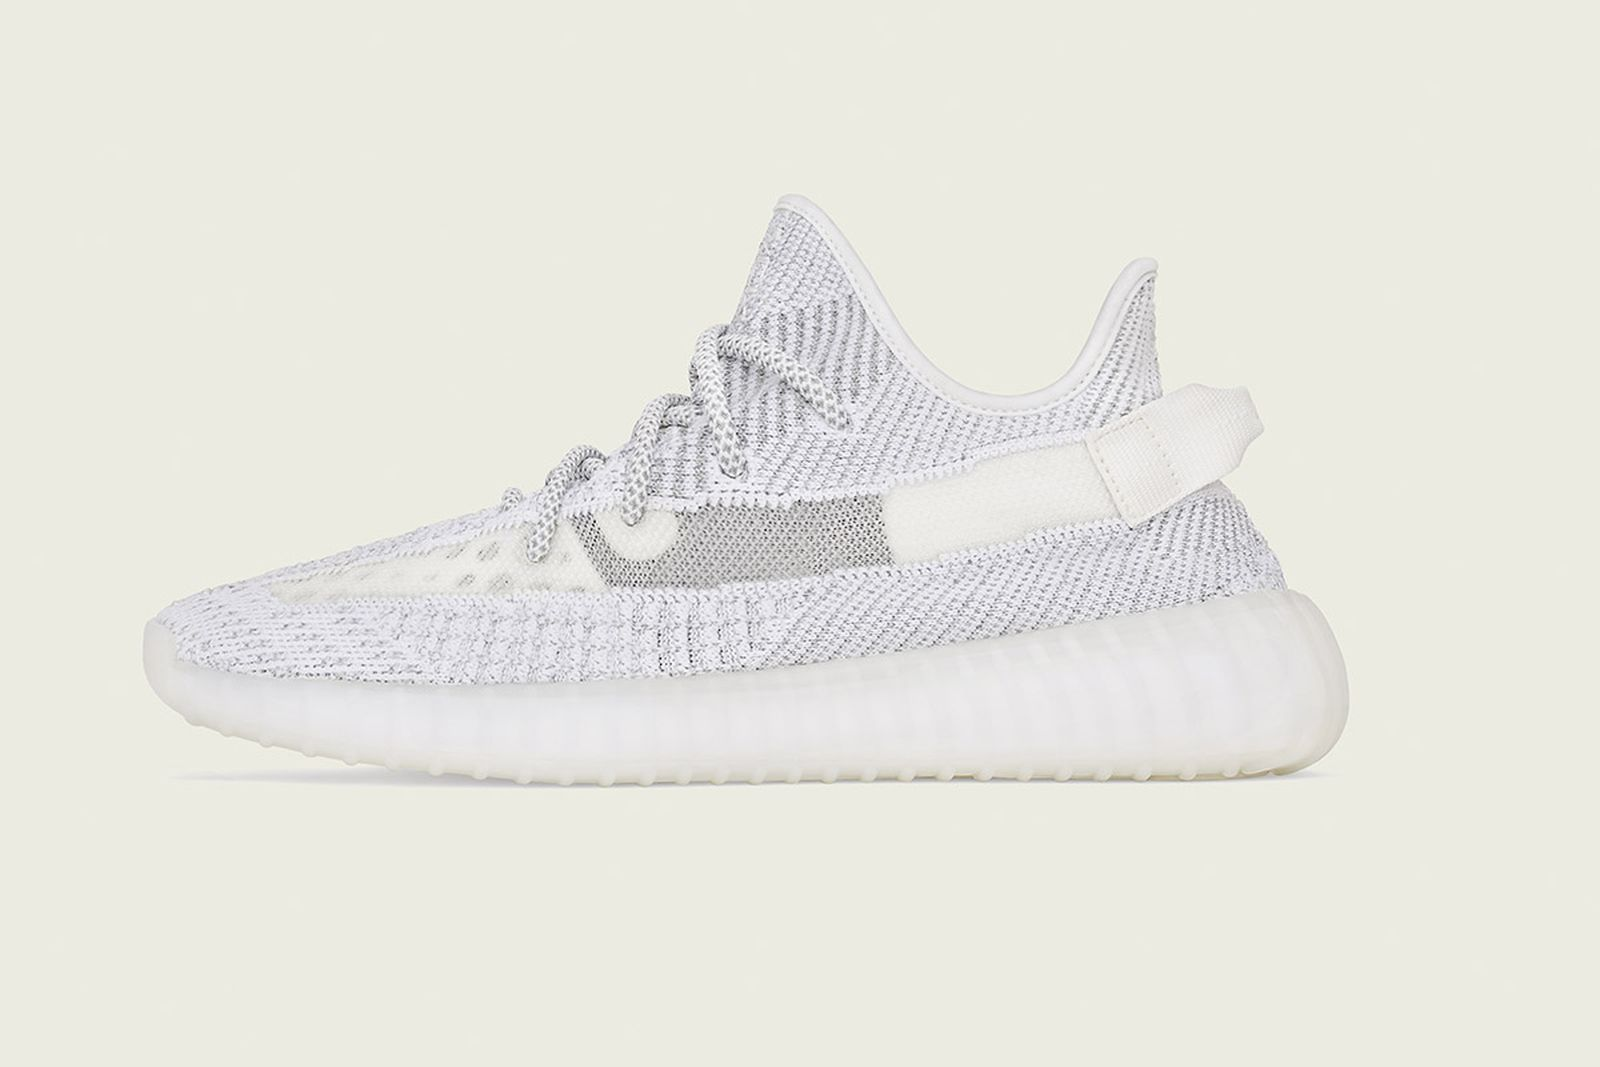 adidas yeezy boost 350 v2 static release date price official kanye west